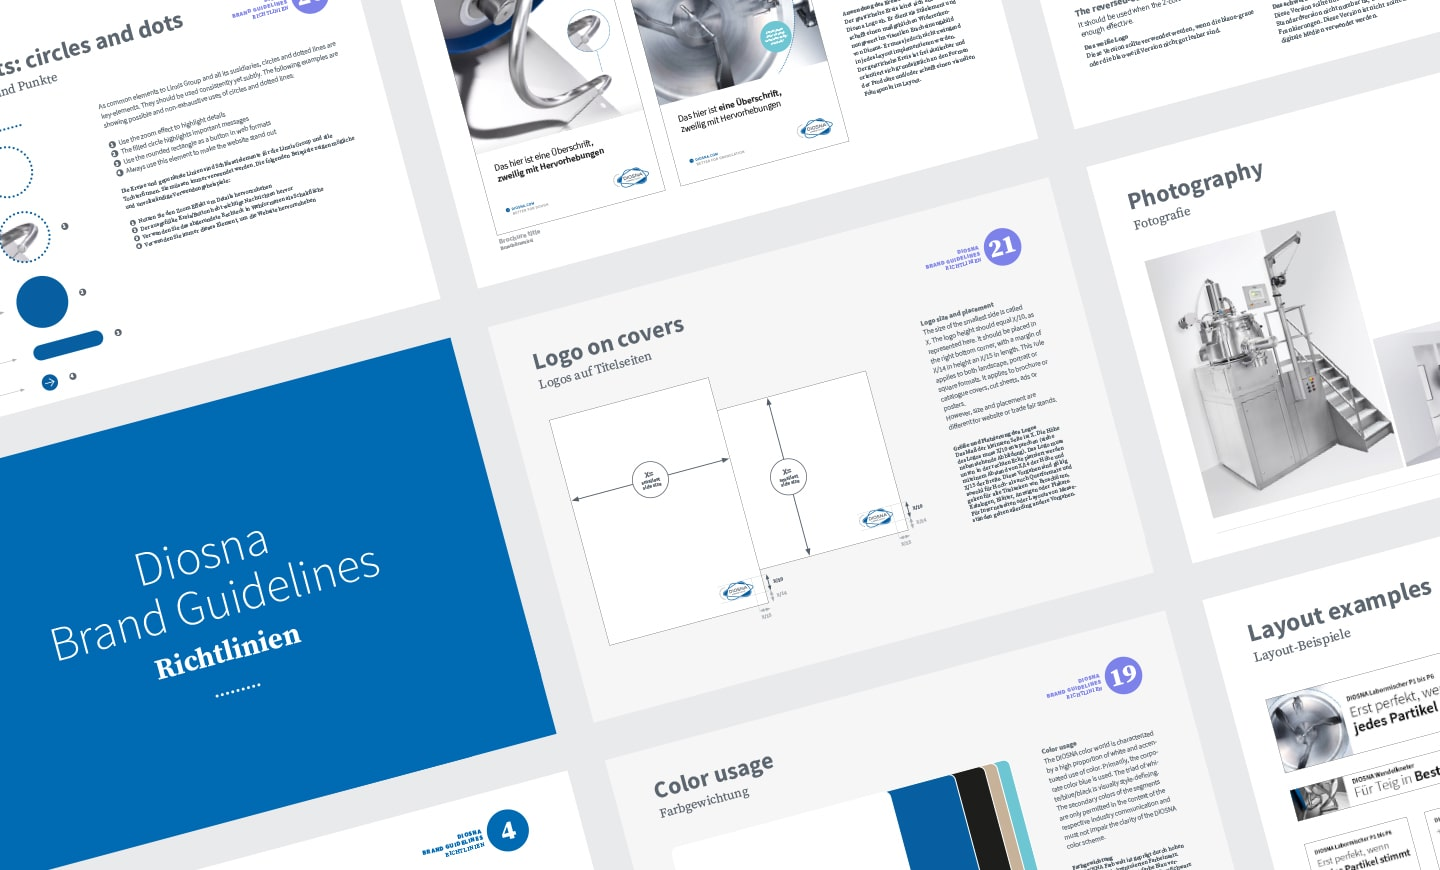 diosna-brand-guidelines